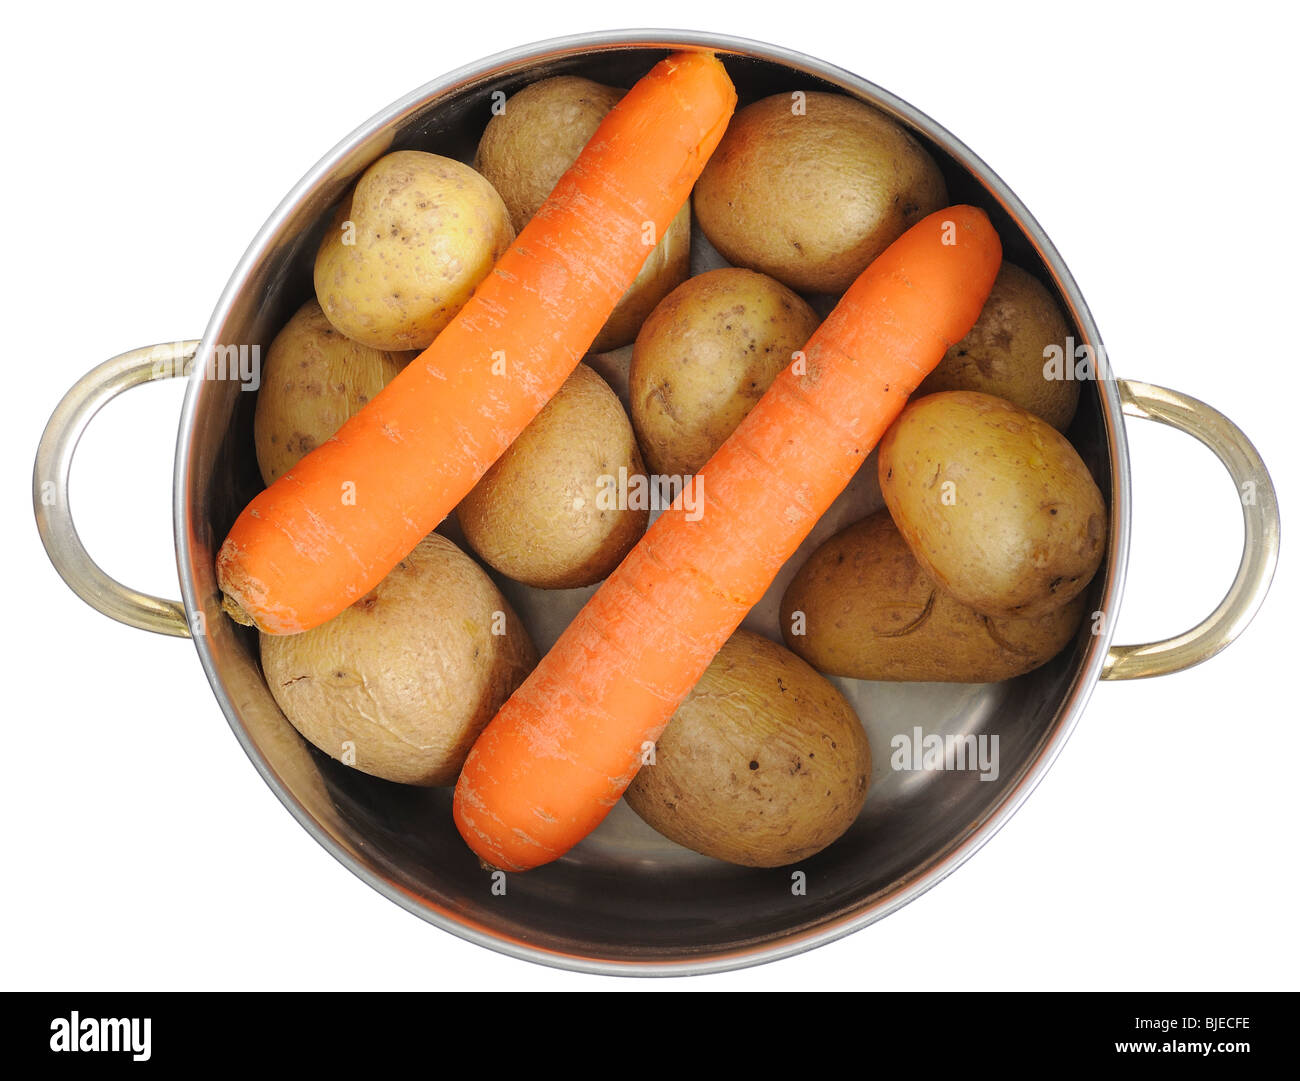 Cooking pot with carrots and potatoes isolated over white background - Stock Image